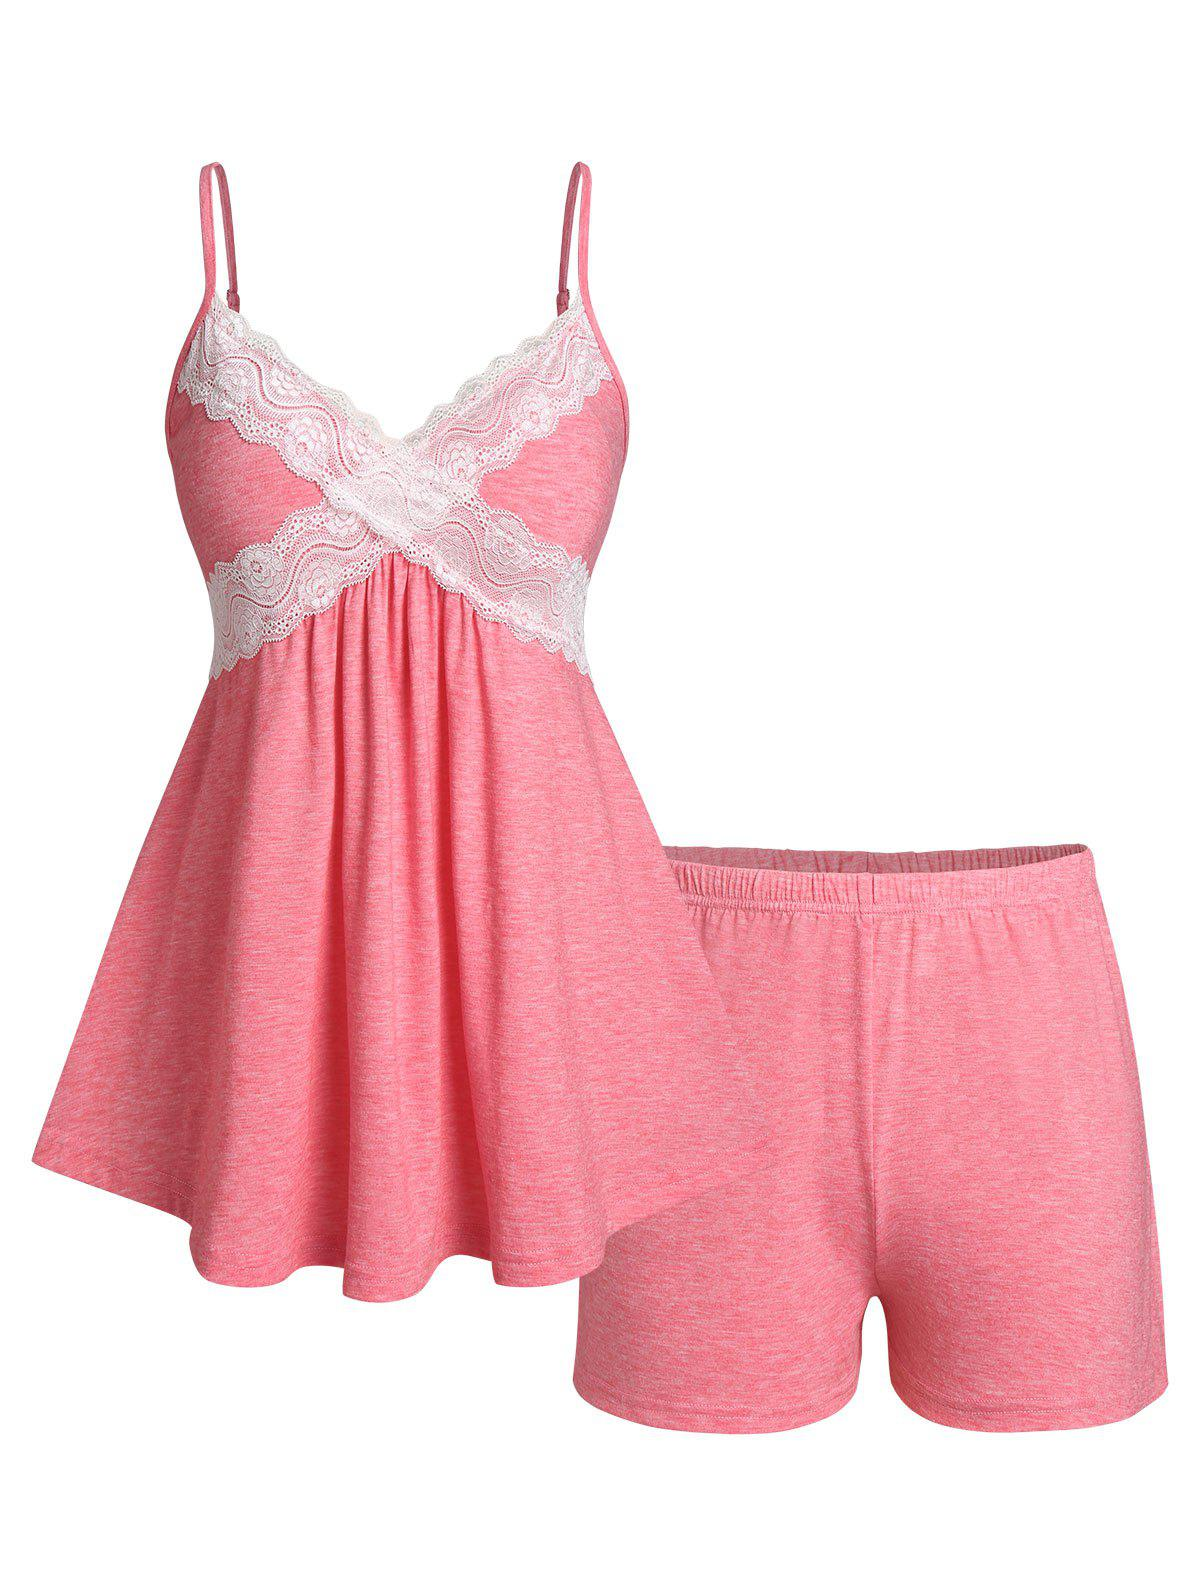 Affordable Plus Size Lace Panel Pajama Cami Skirted Top and Shorts Set